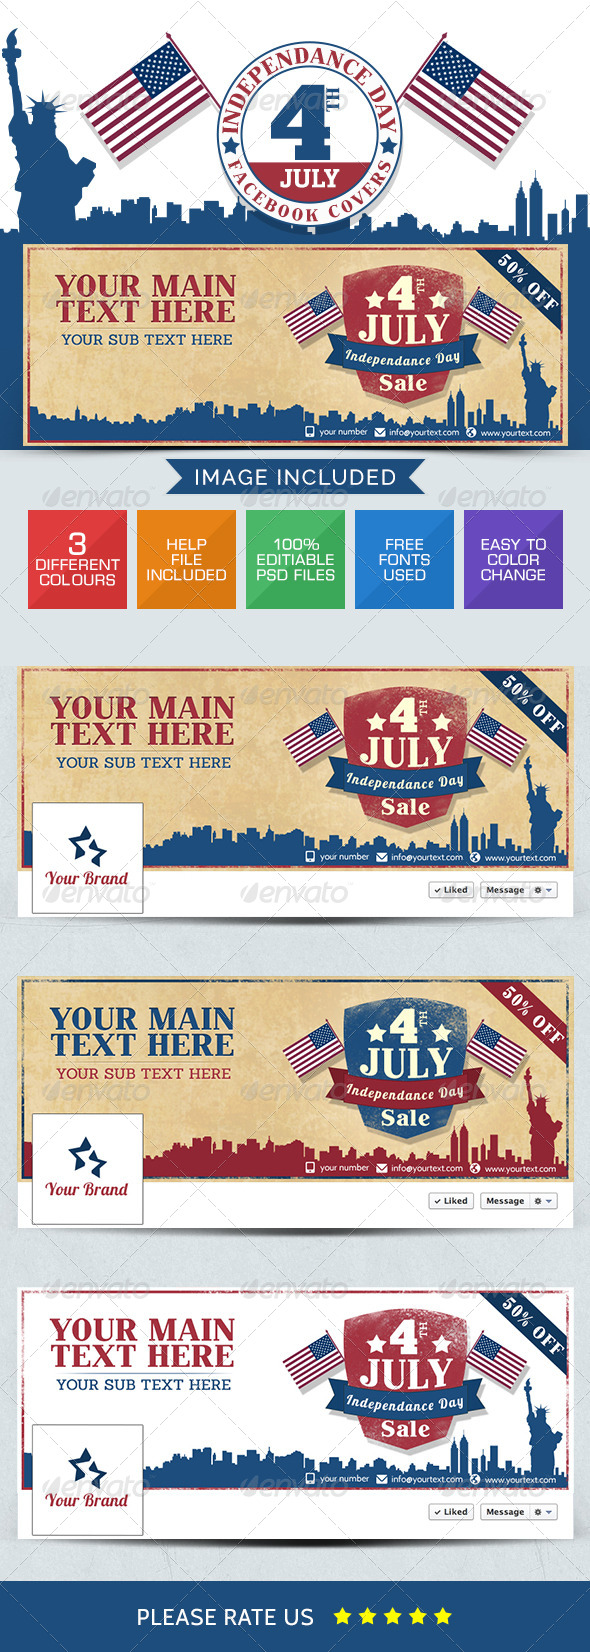 GraphicRiver July 4th Sale Facebook Cover Page 8021781